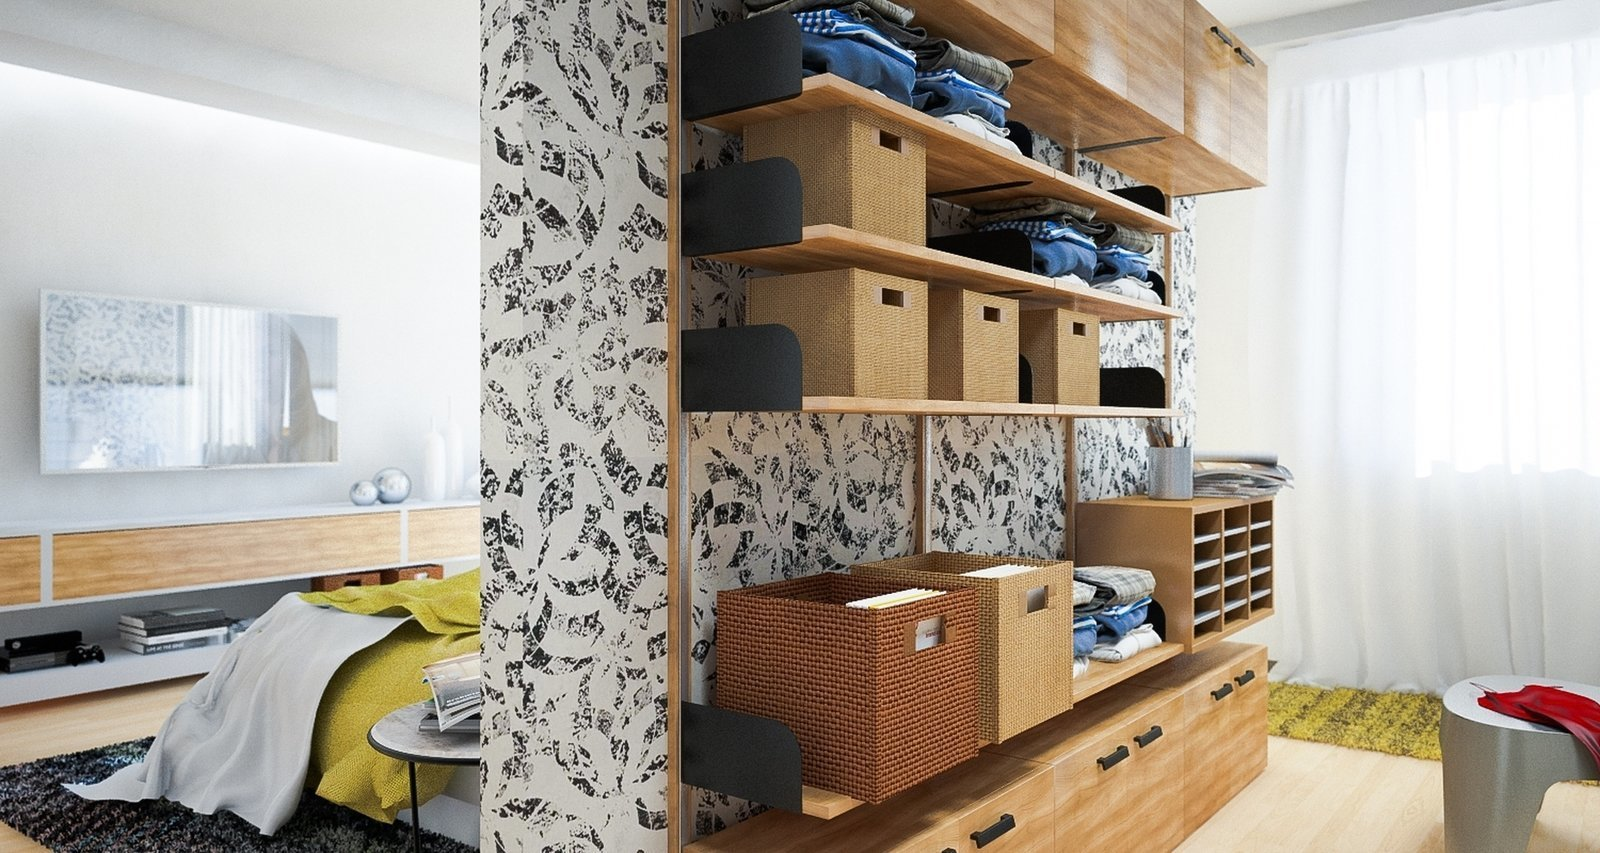 Photo 2 Of 5 In 4 Decluttering Tips From Organizing Master